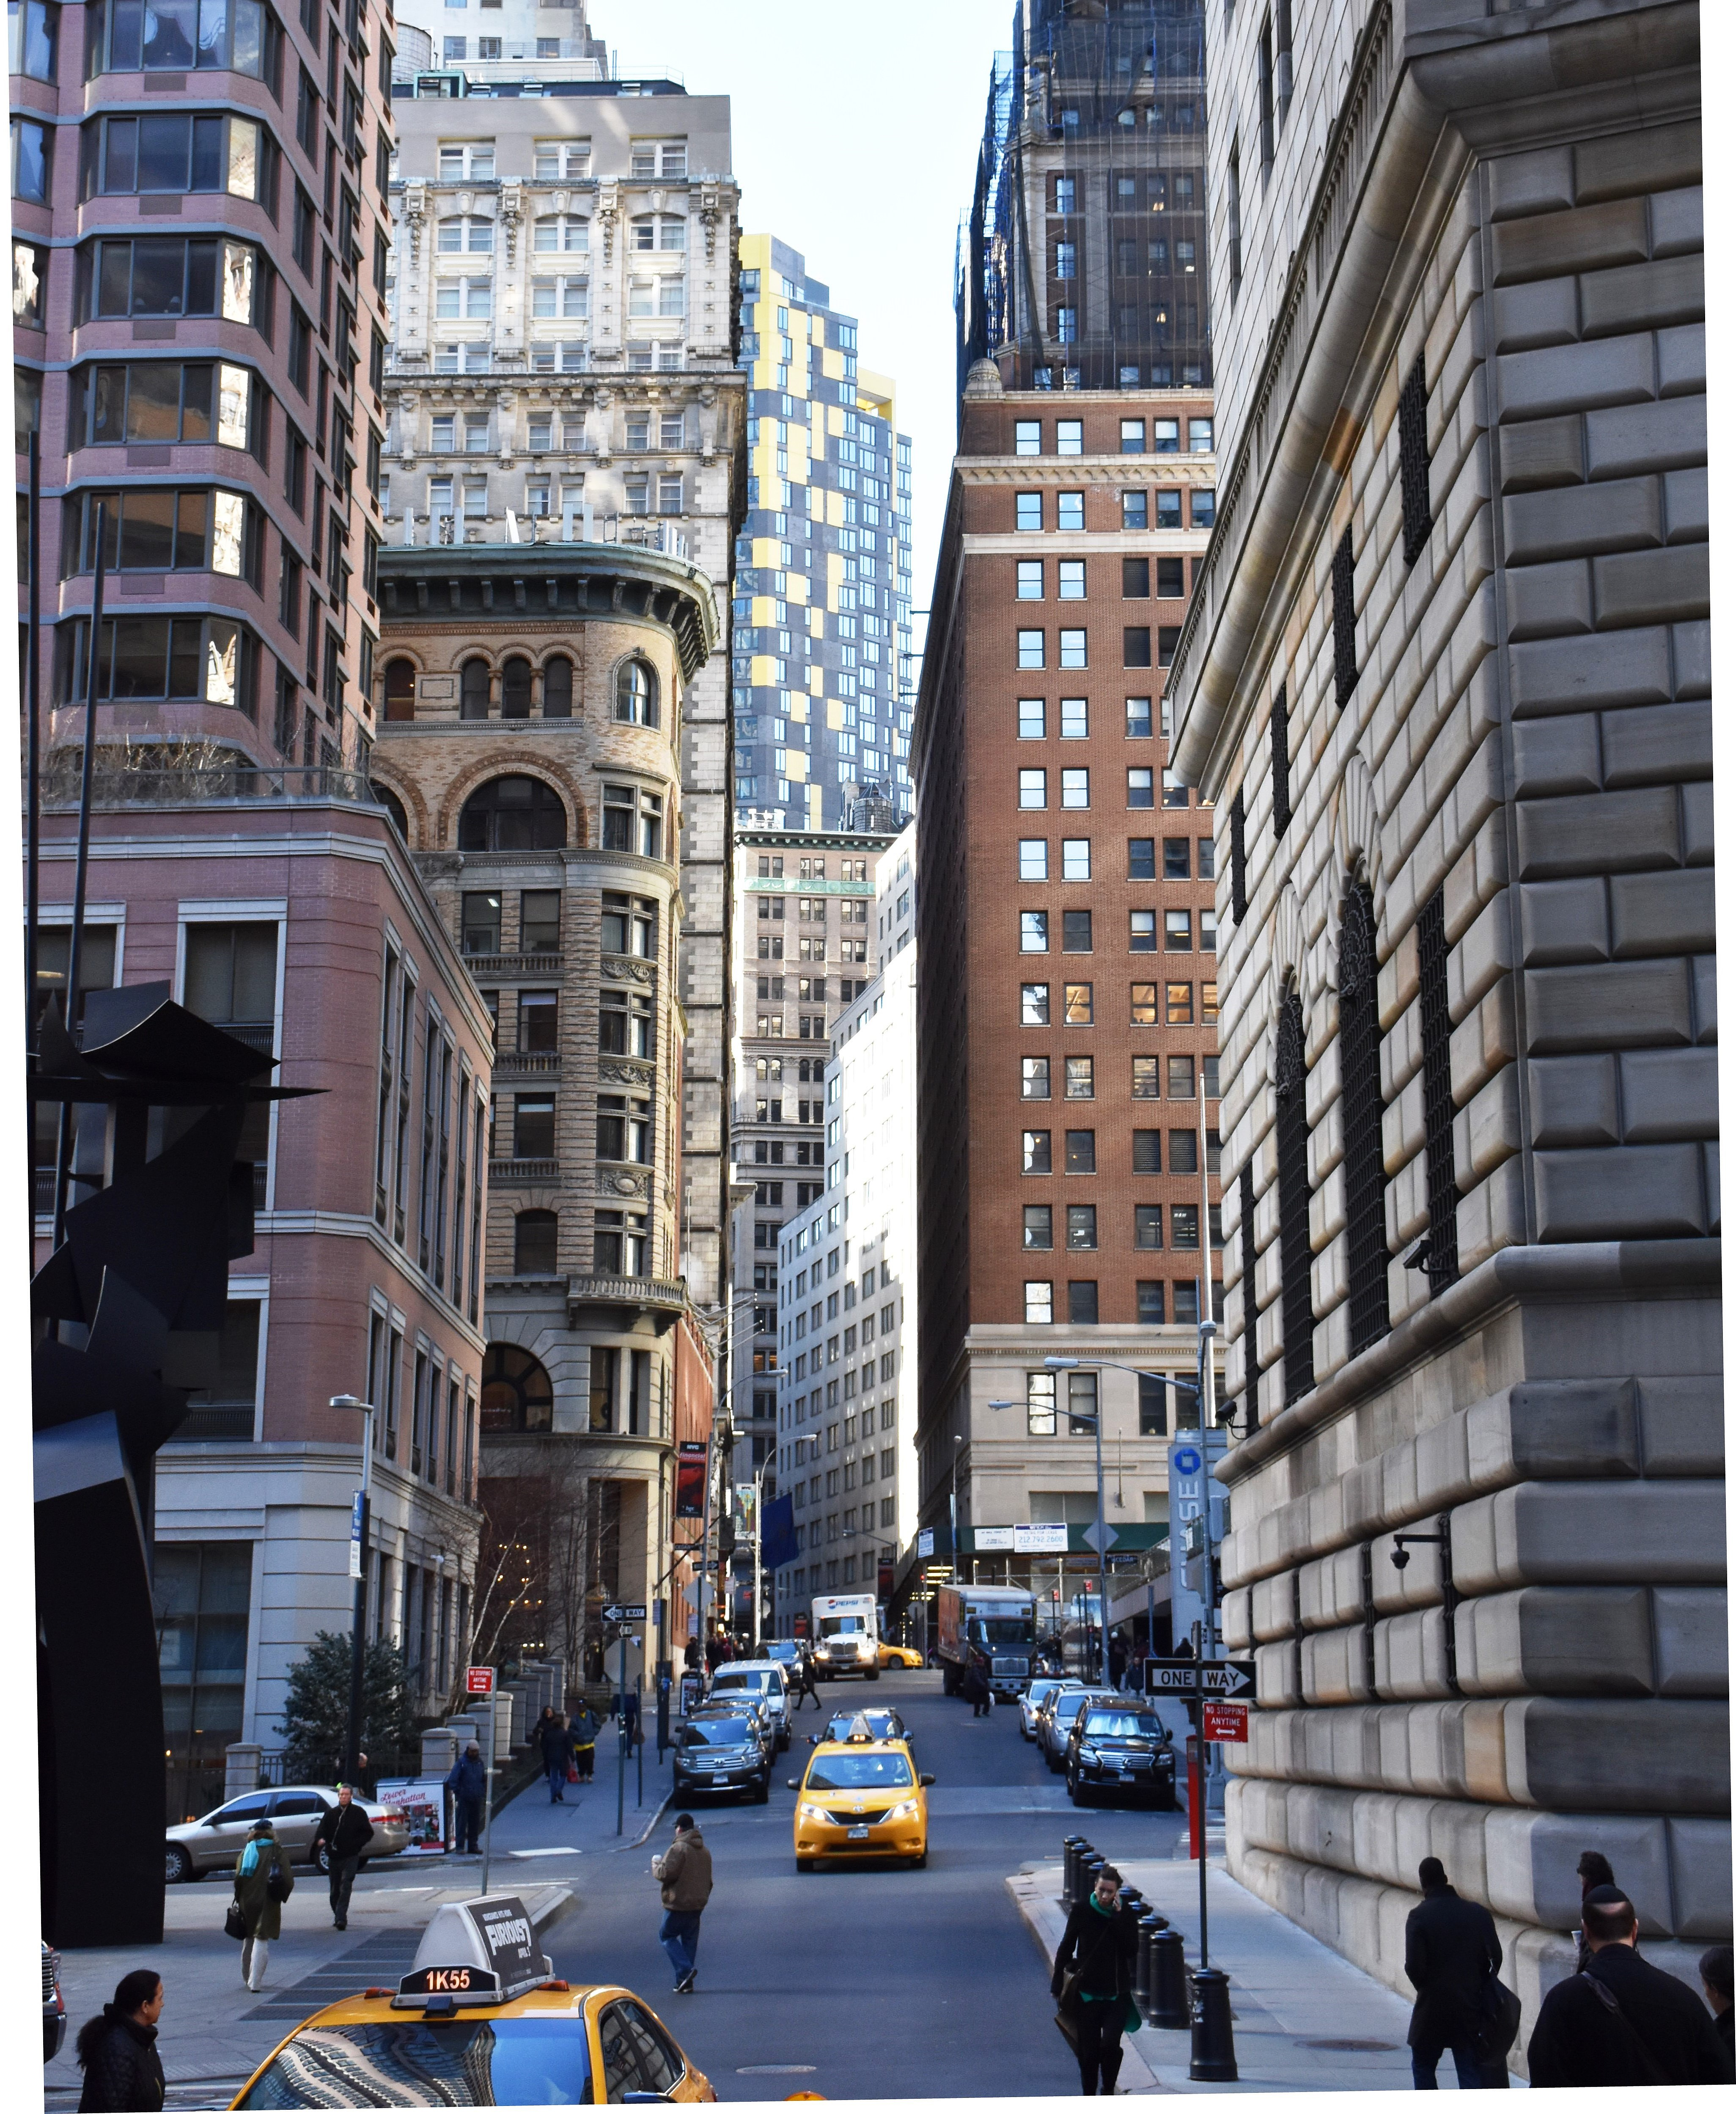 From New York City: File:William Street, Financial District, New York City 5